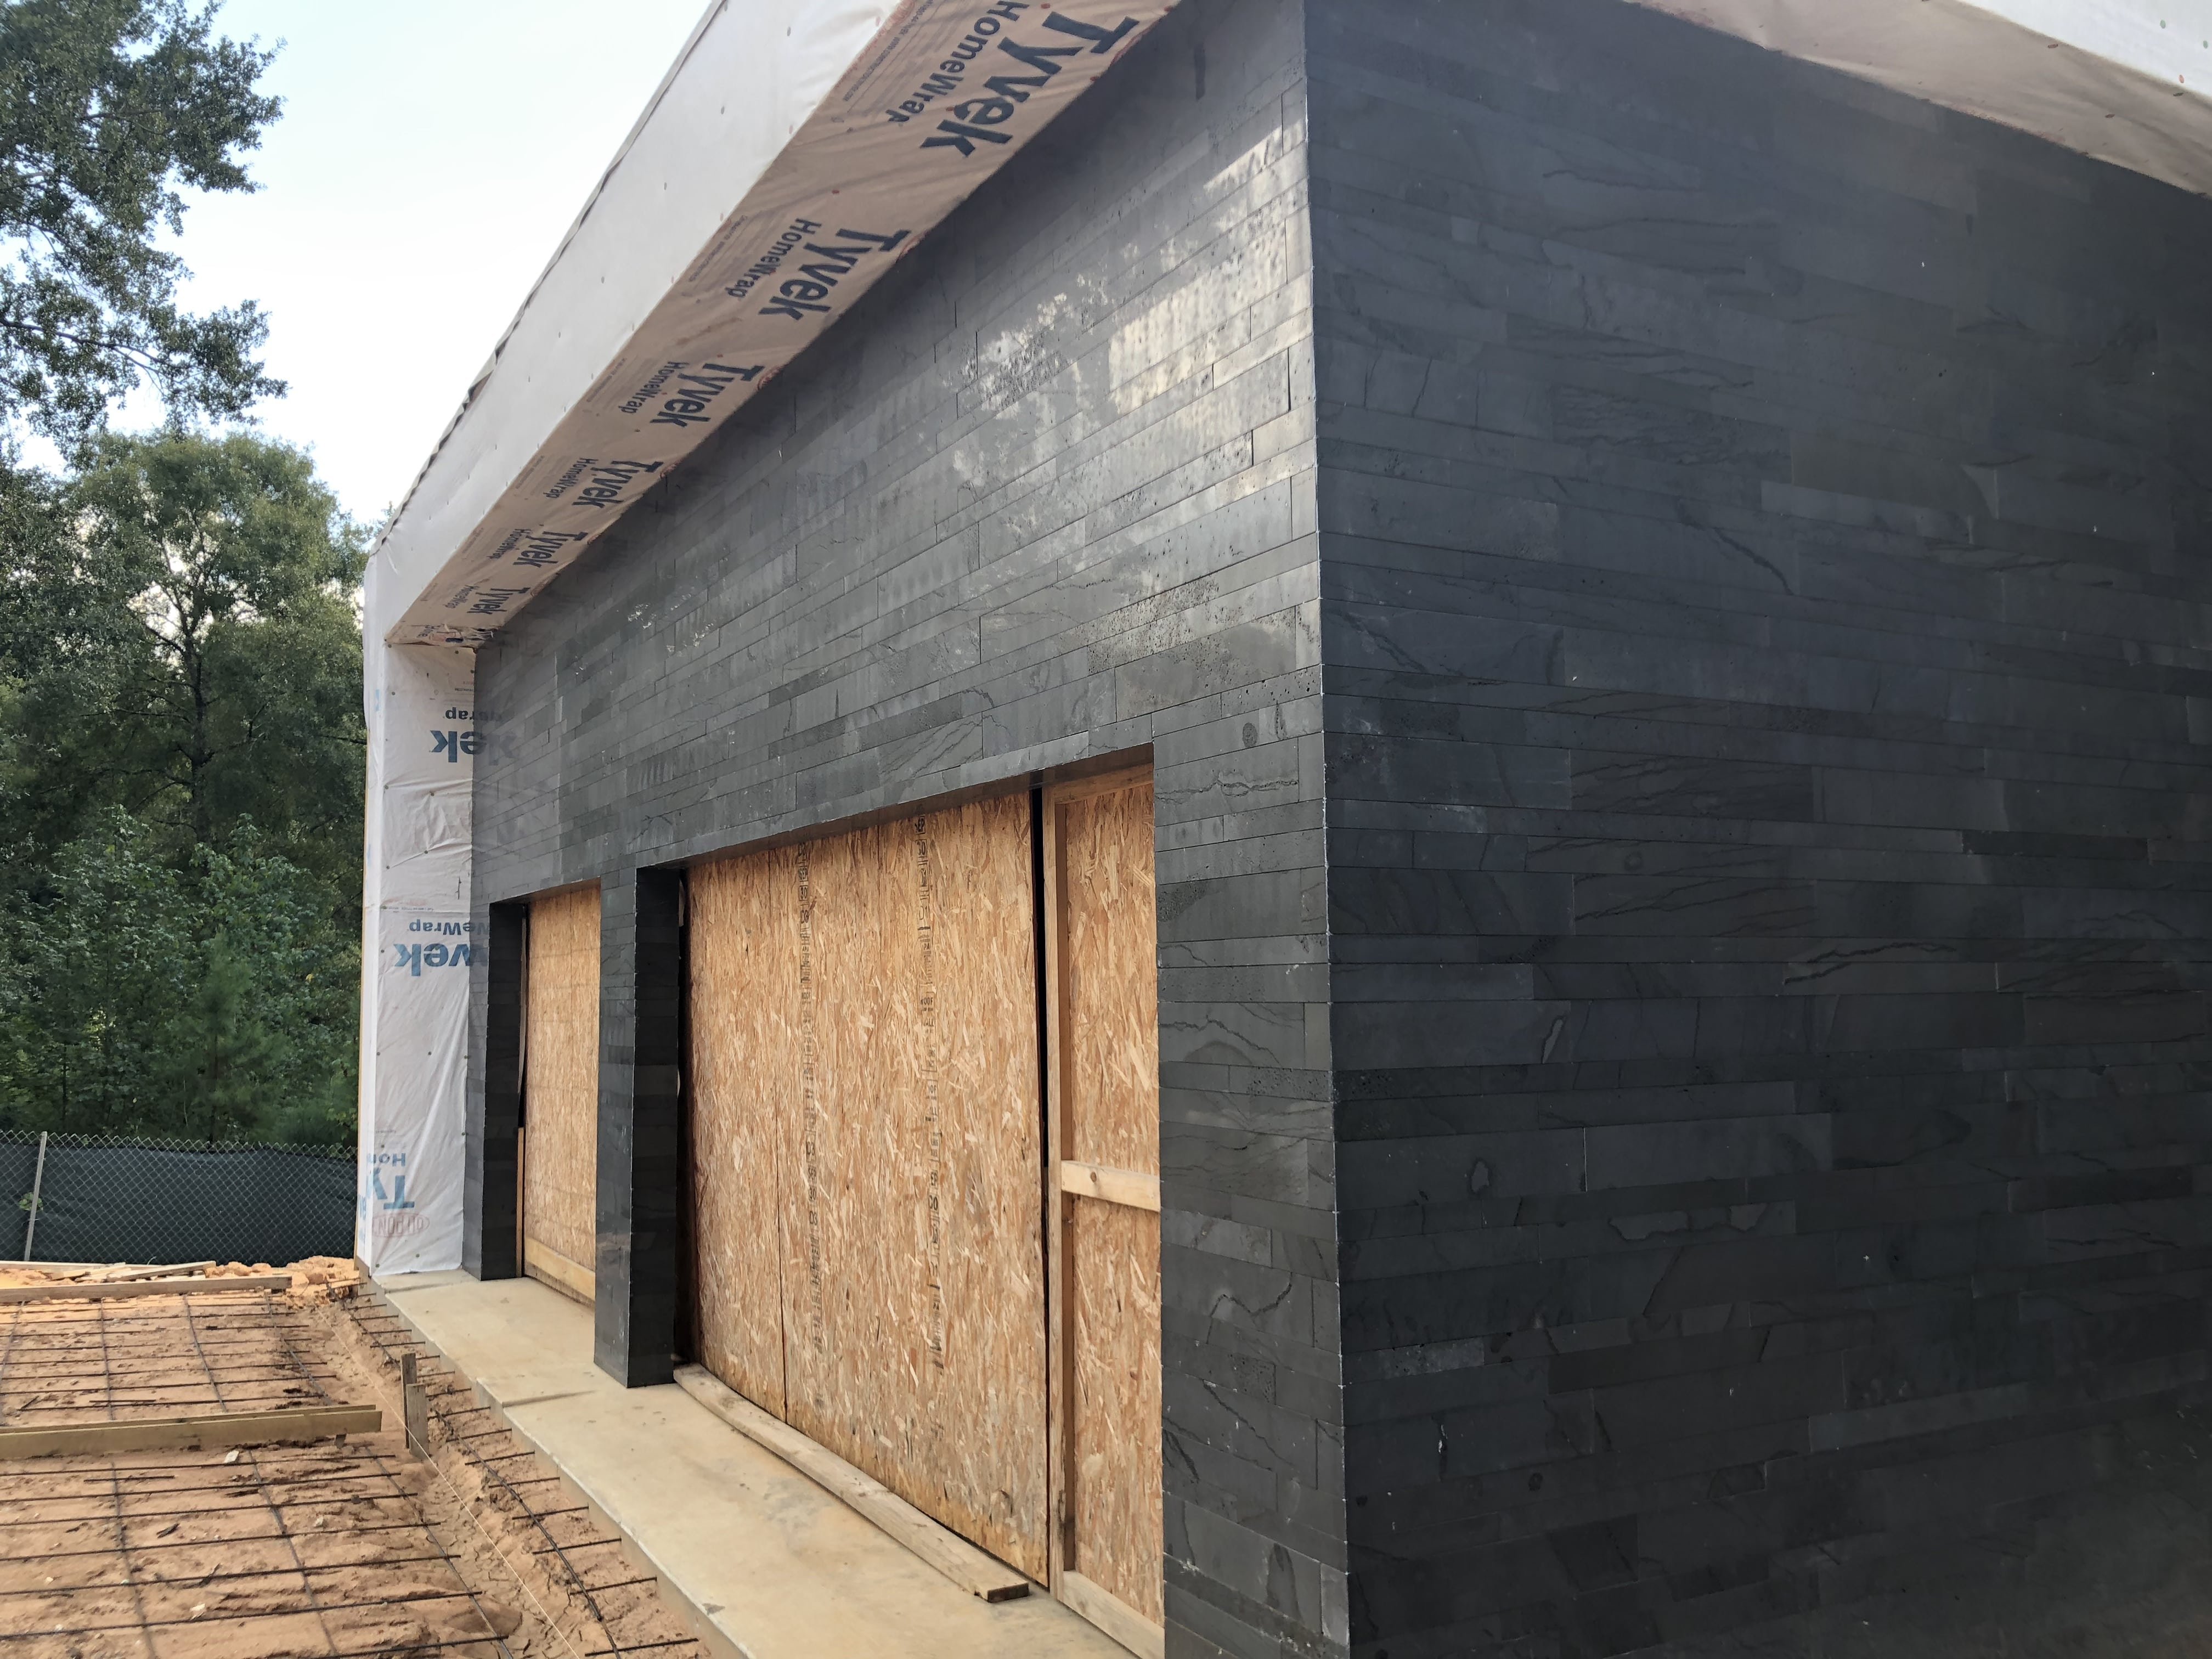 Norstone Graphite Planc Large Format Tile on a Residential Installation in Houston, TX